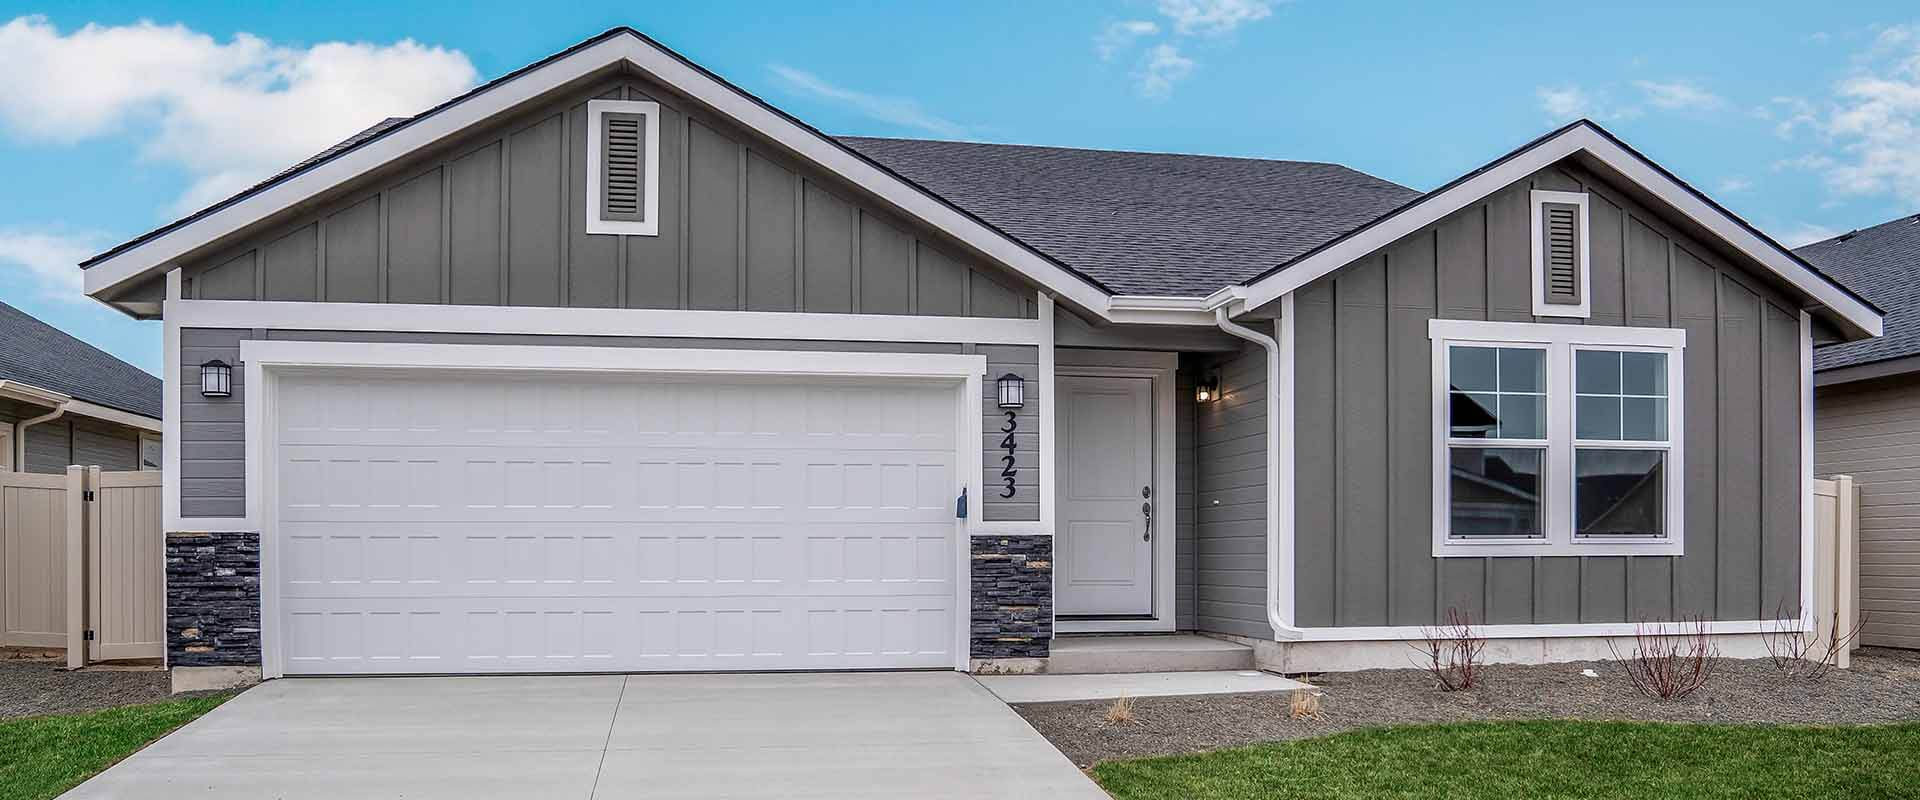 Crestwood_Hubble_Homes_New_Homes_Boise_Exterior51.jpg